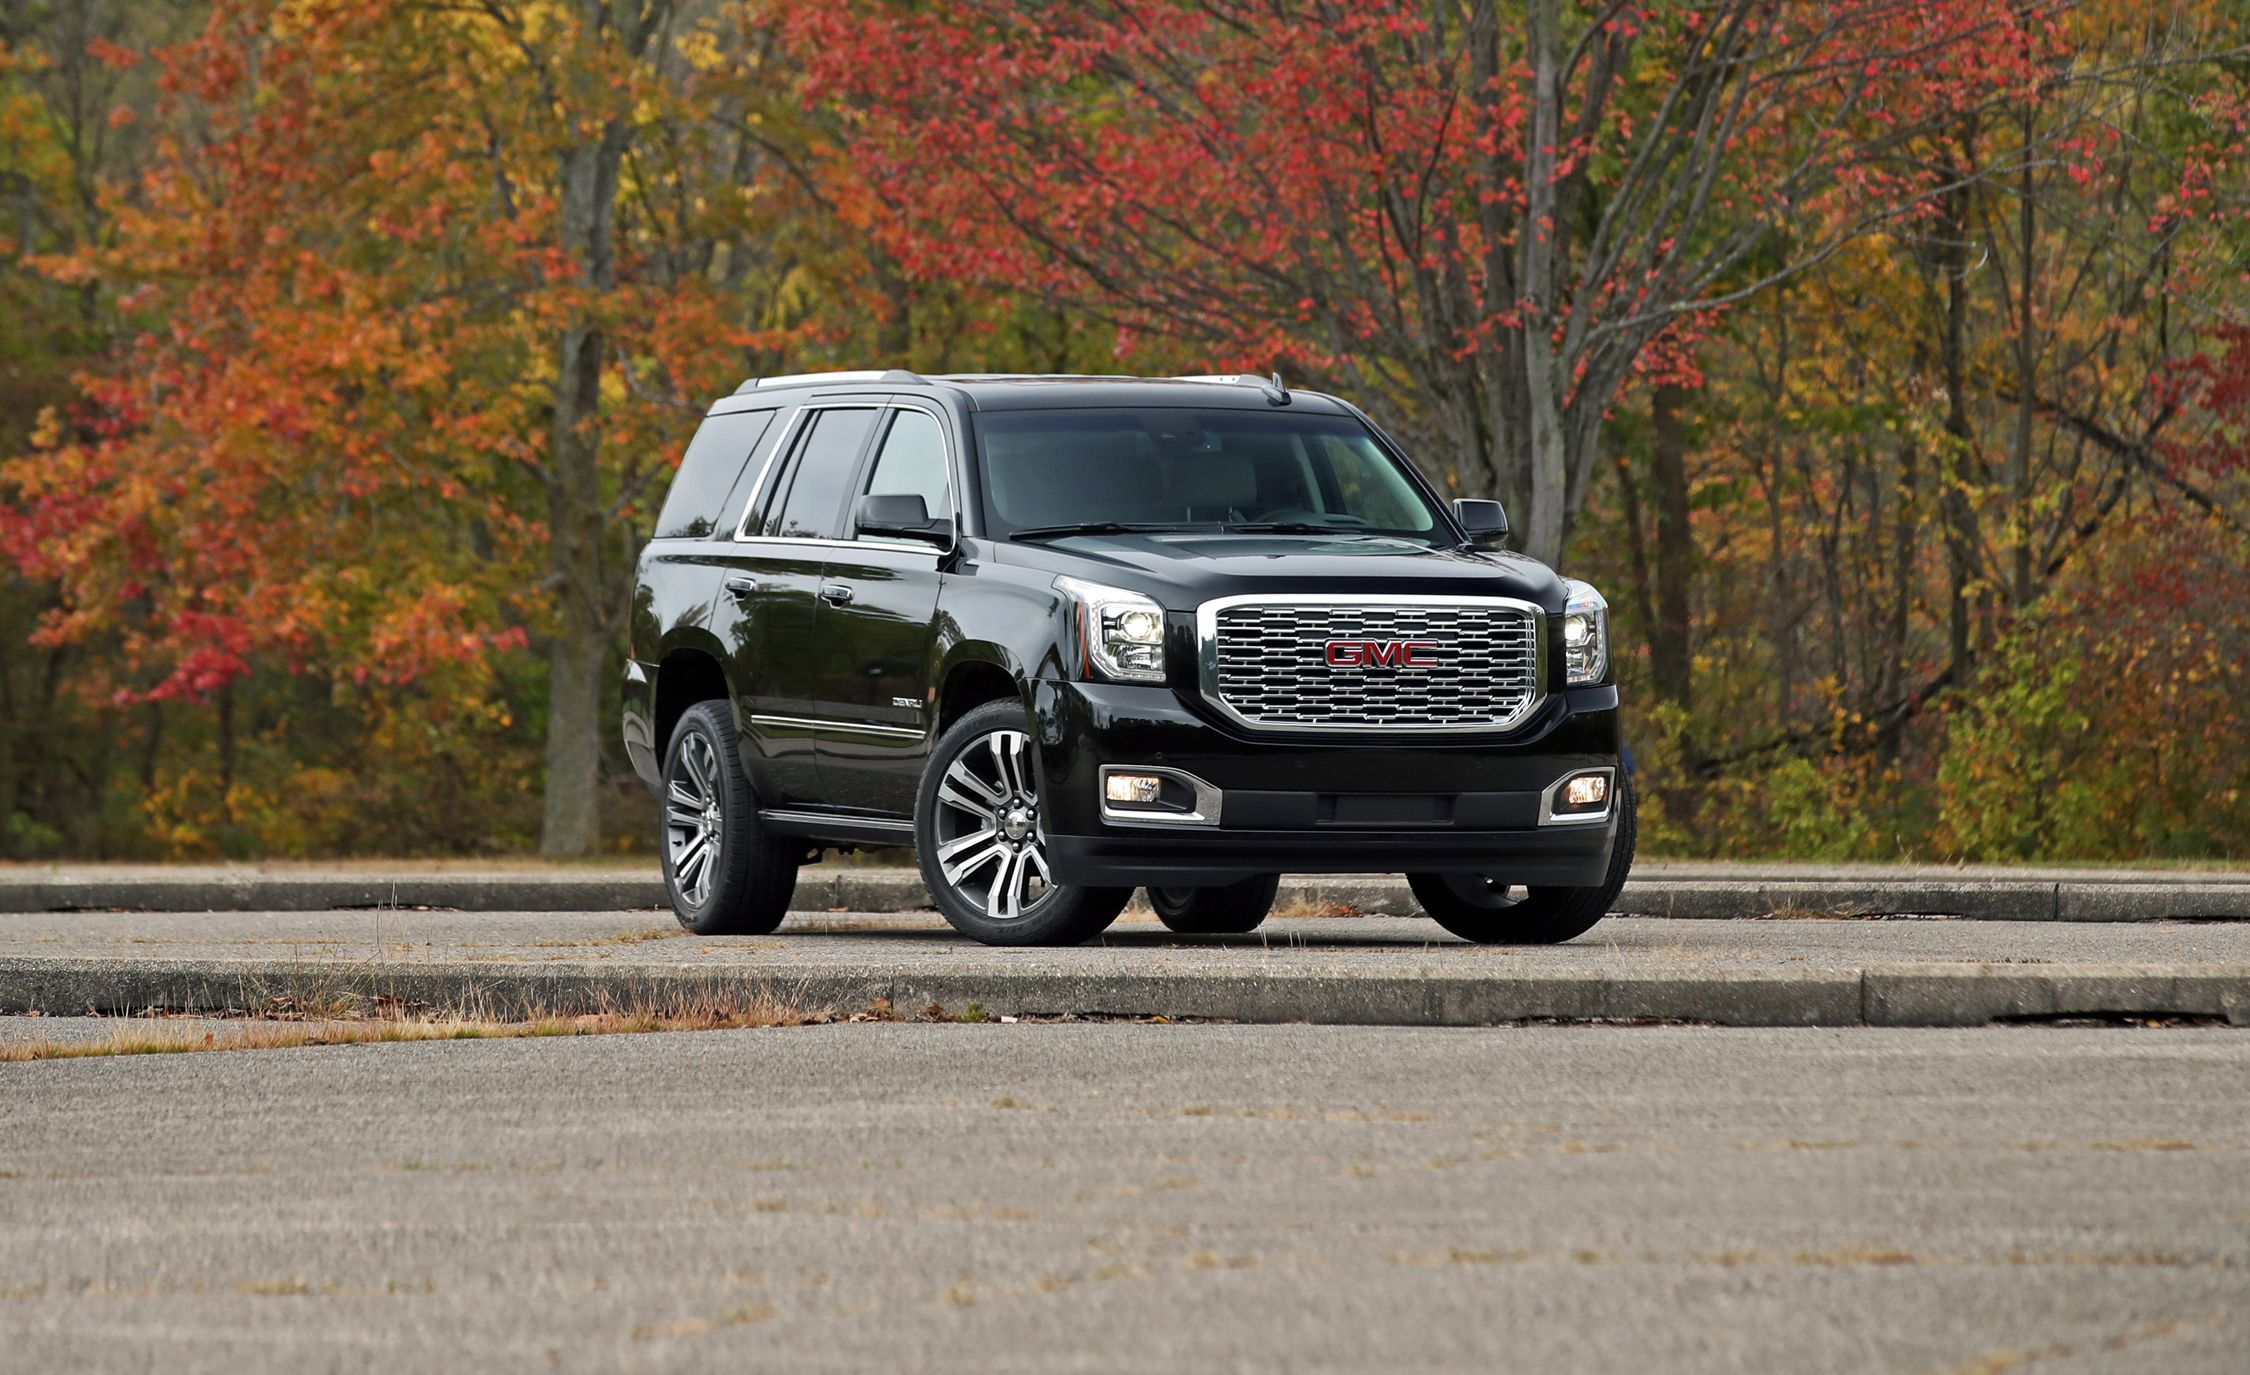 2018 Gmc Yukon Denali 4wd 10 Sd Automatic Test Do Four Extra Gears Make A Difference Review Car And Driver